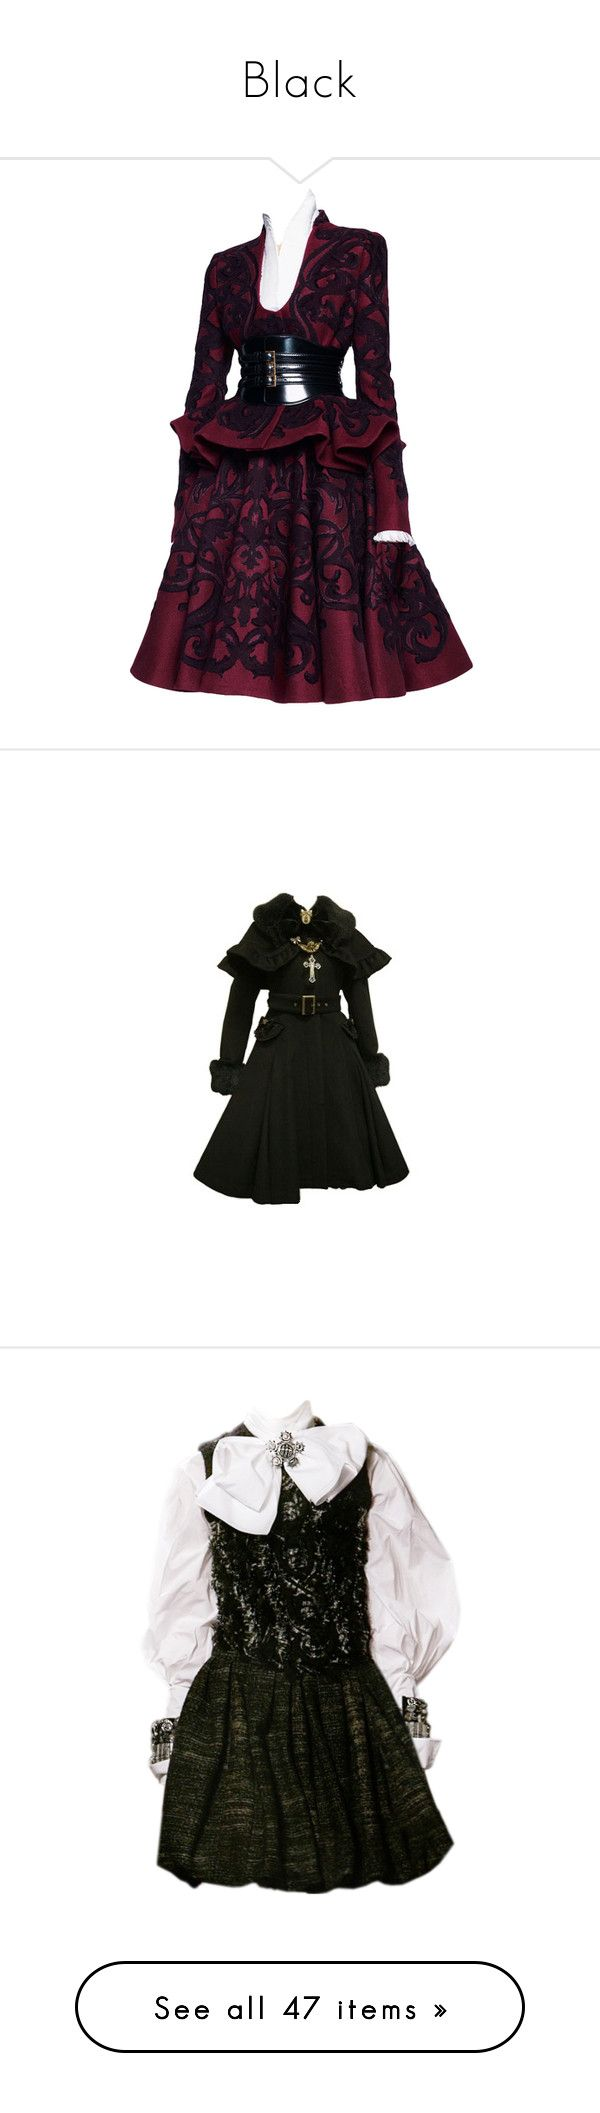 """""""Black"""" by ahapplet ❤ liked on Polyvore featuring dresses, gowns, steampunk, vestidos, purple dress, steampunk dress, steam punk dress, coats, outerwear and jackets"""